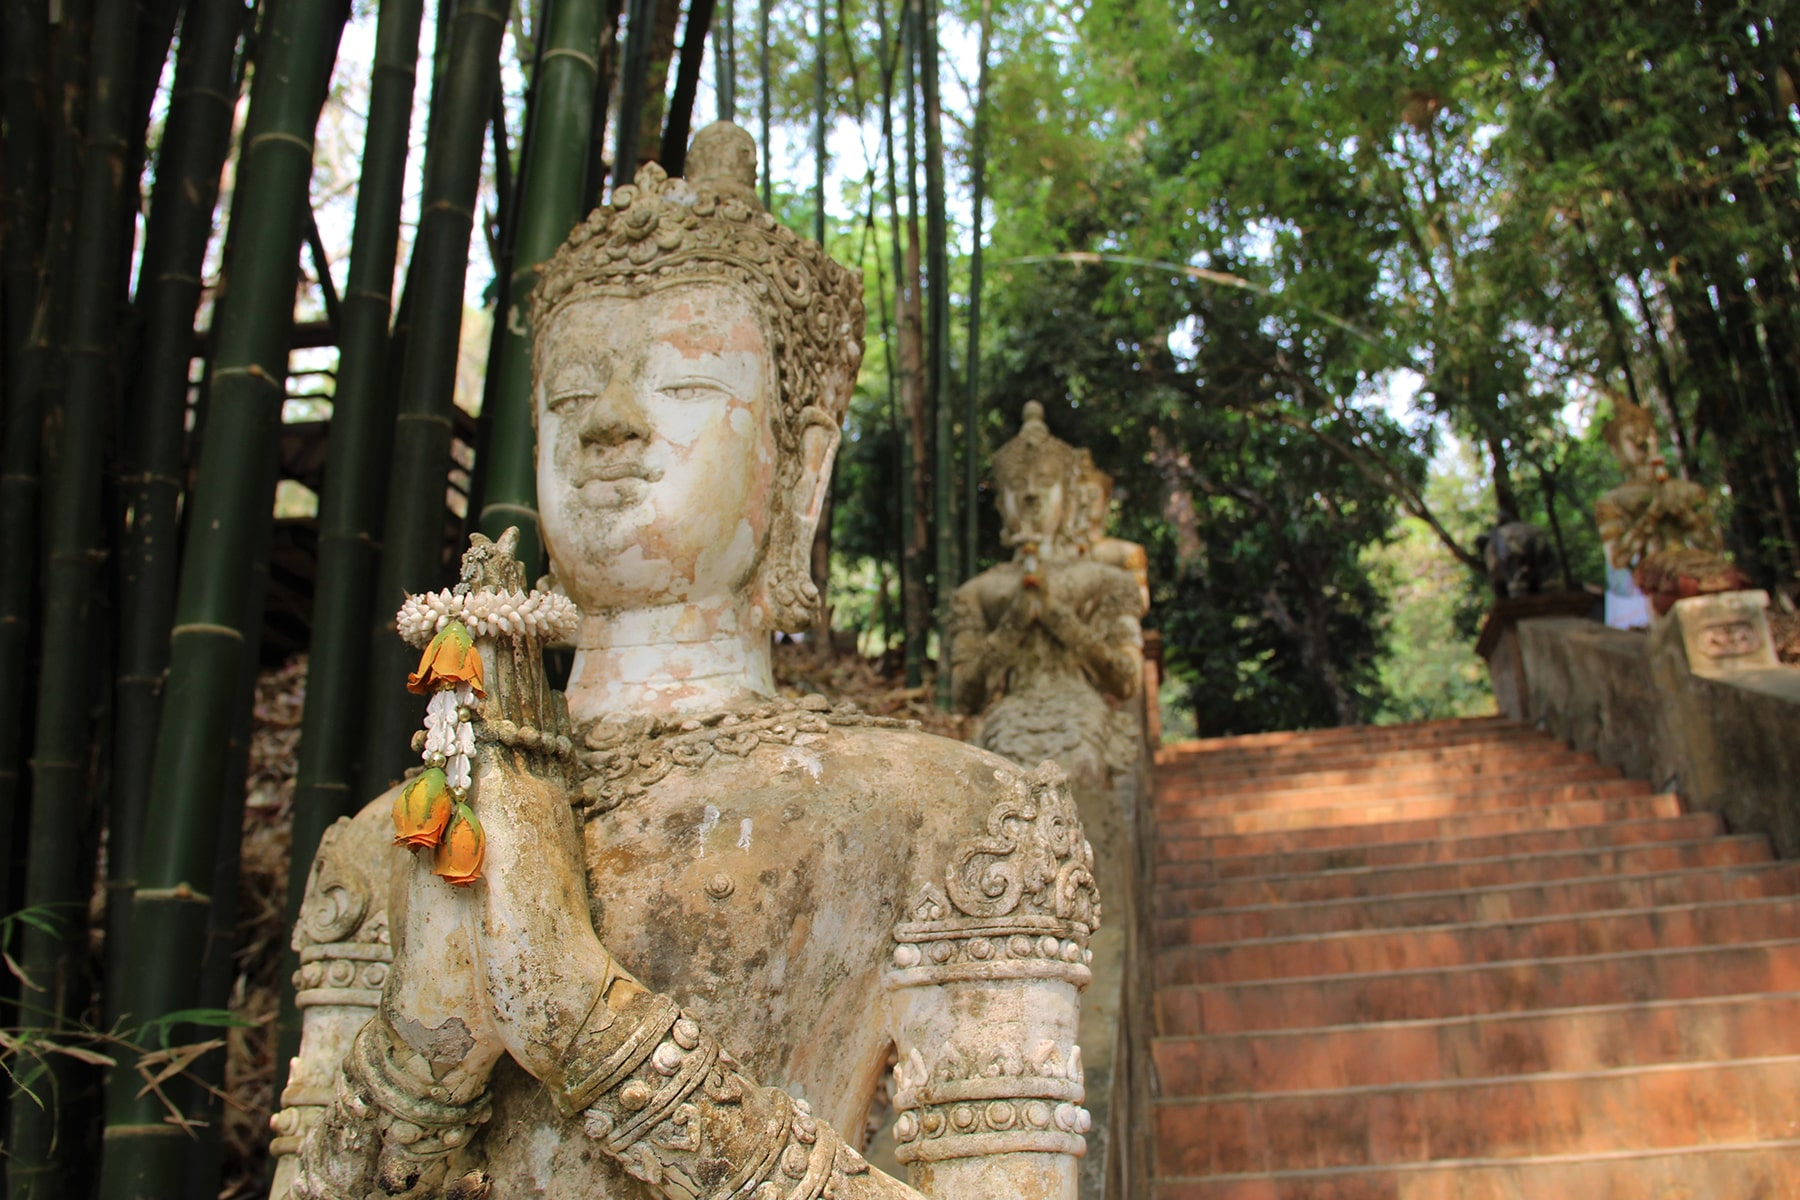 Praying statue with offerings in Chiang Mai Wat Pha Lat temple